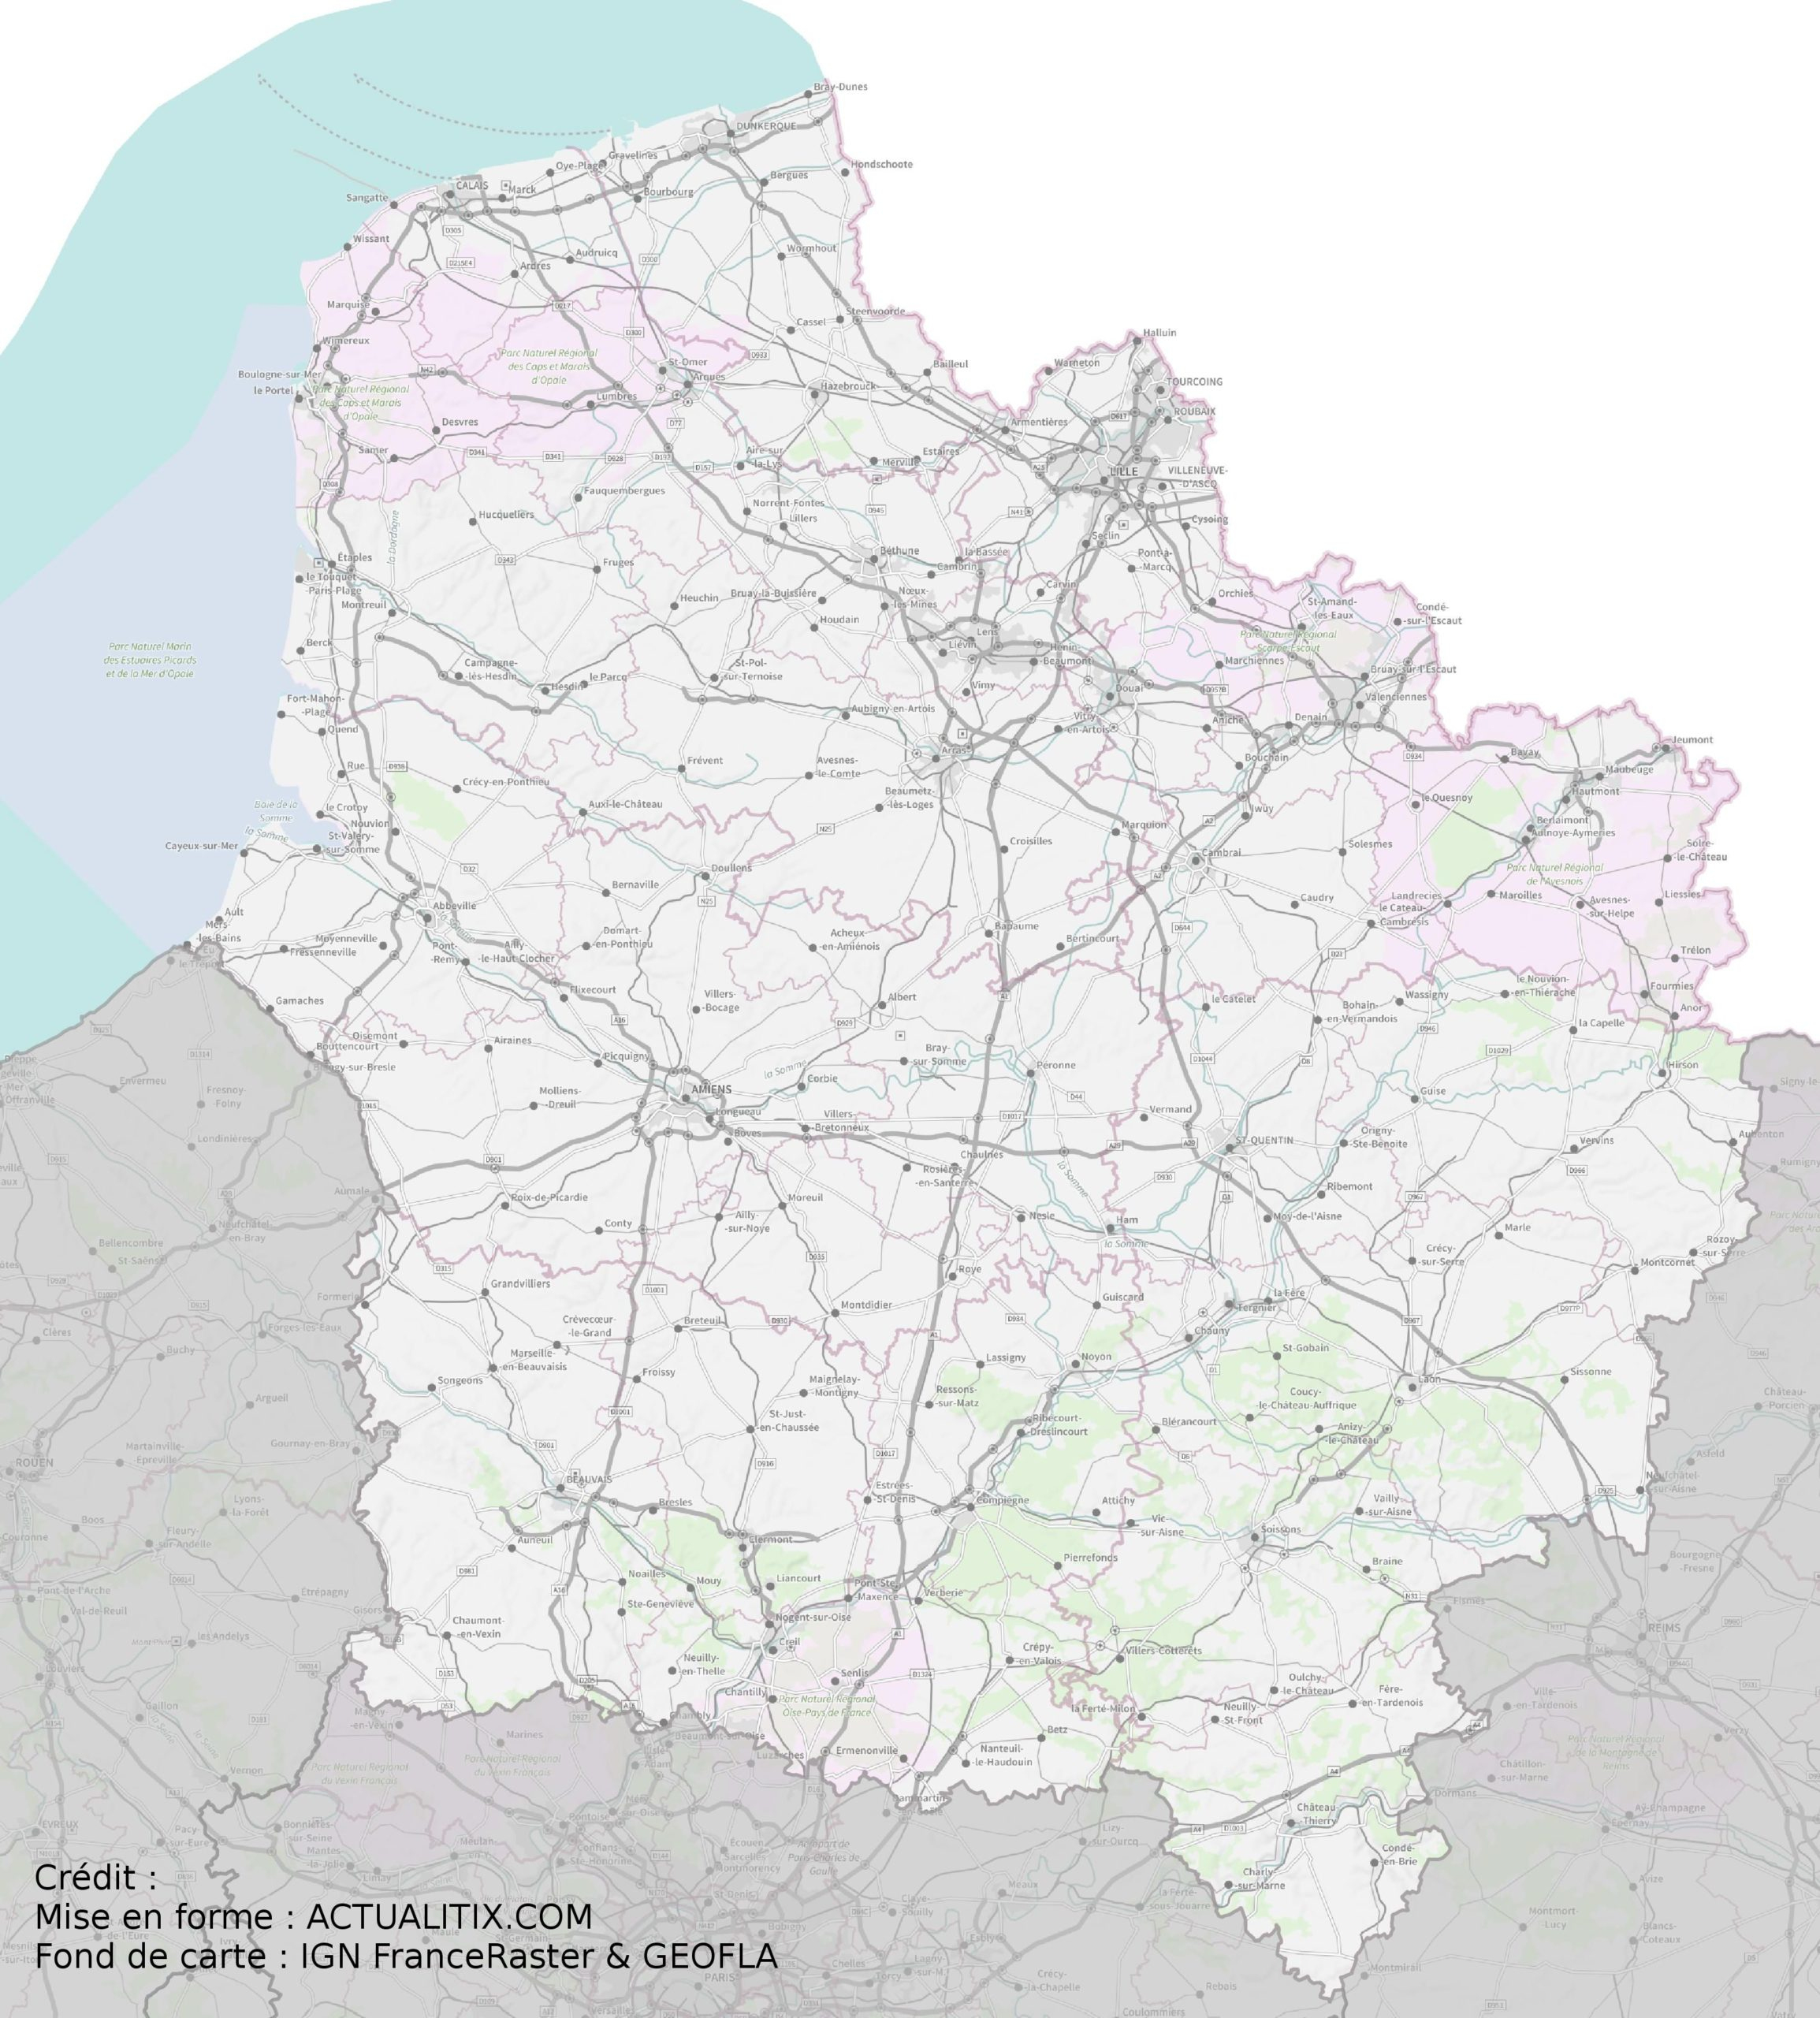 Carte Des Hauts-De-France - Hauts-De-France Carte Des Villes destiné Carte Numero Departement